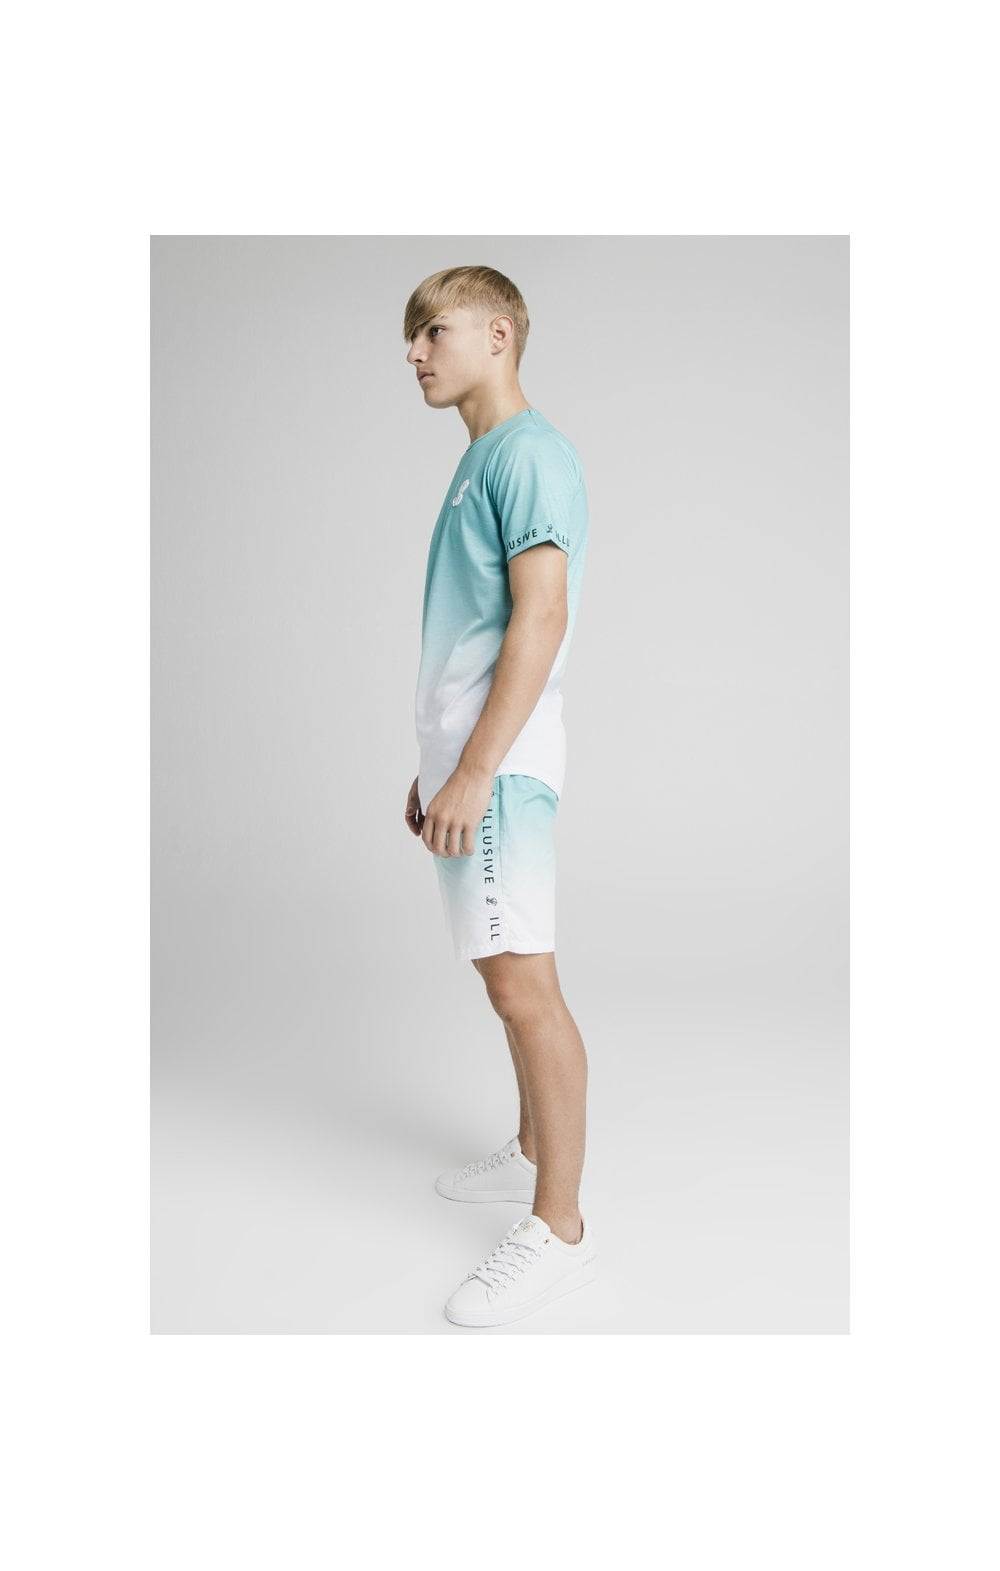 Load image into Gallery viewer, Illusive London Fade Swim Shorts - Teal & White (5)